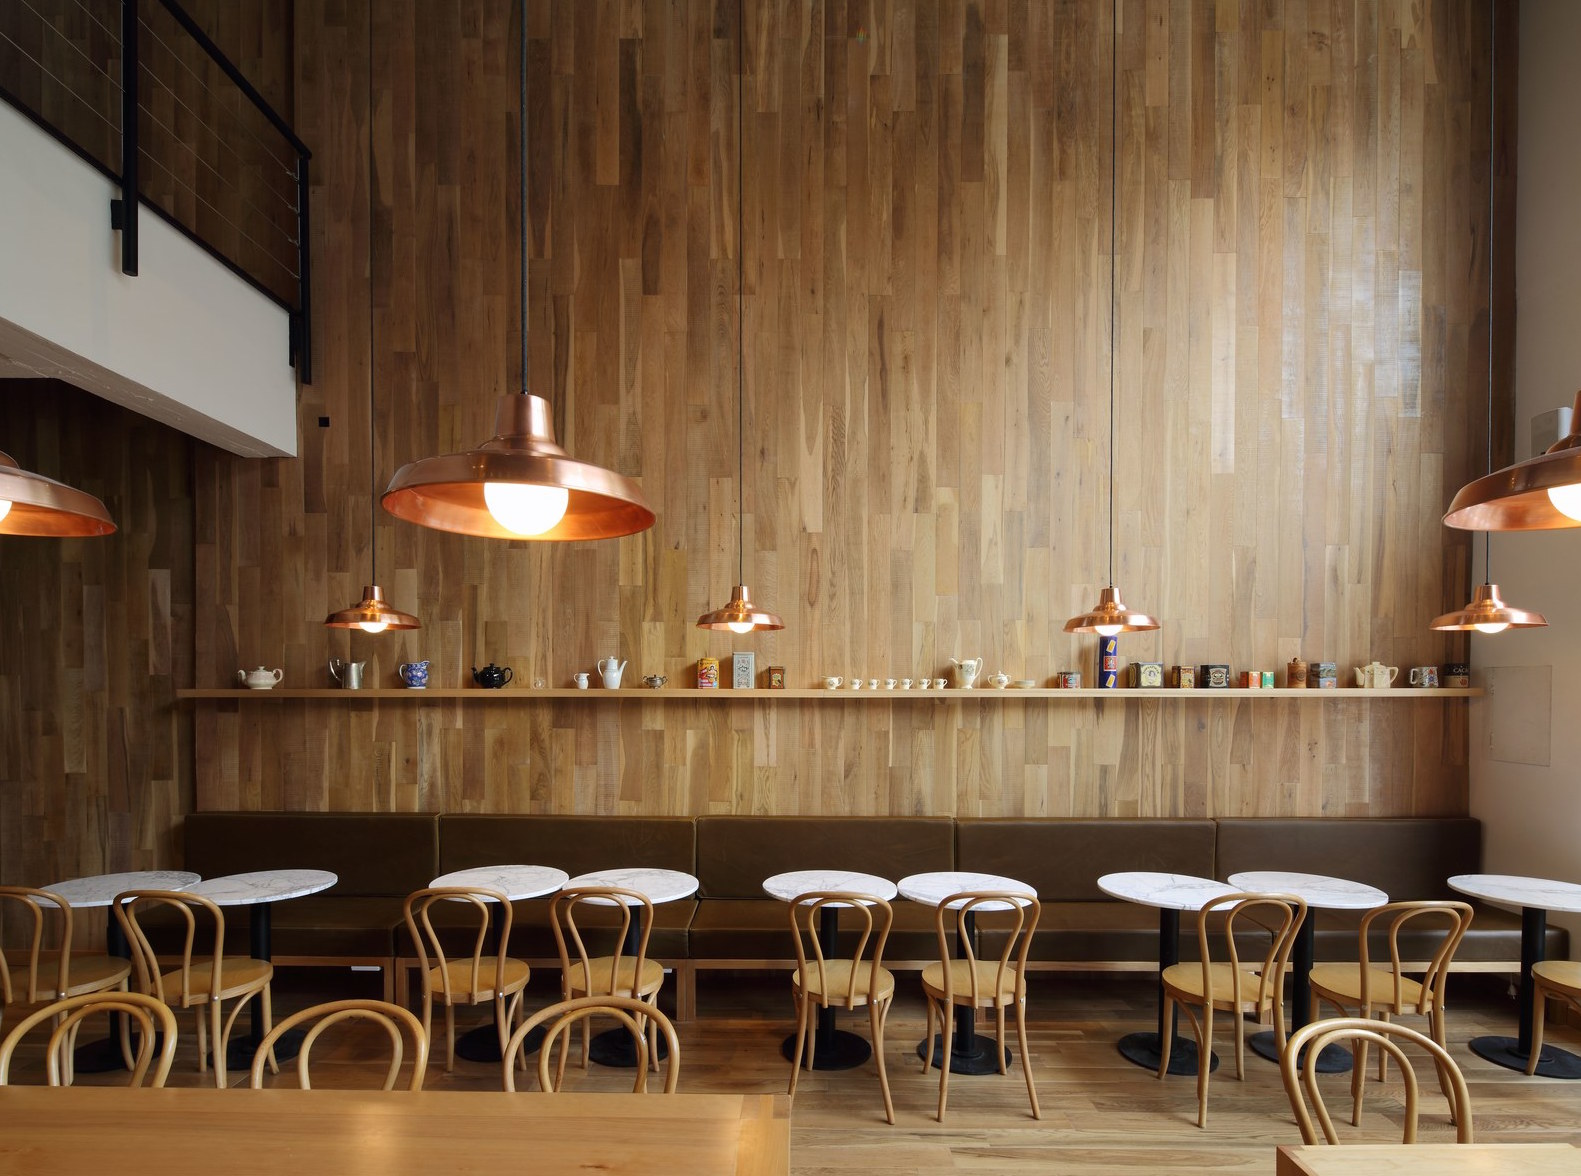 Blond wood, copper pendants, and a long chocolate banquette at merienda mainstay Ninina Bakery